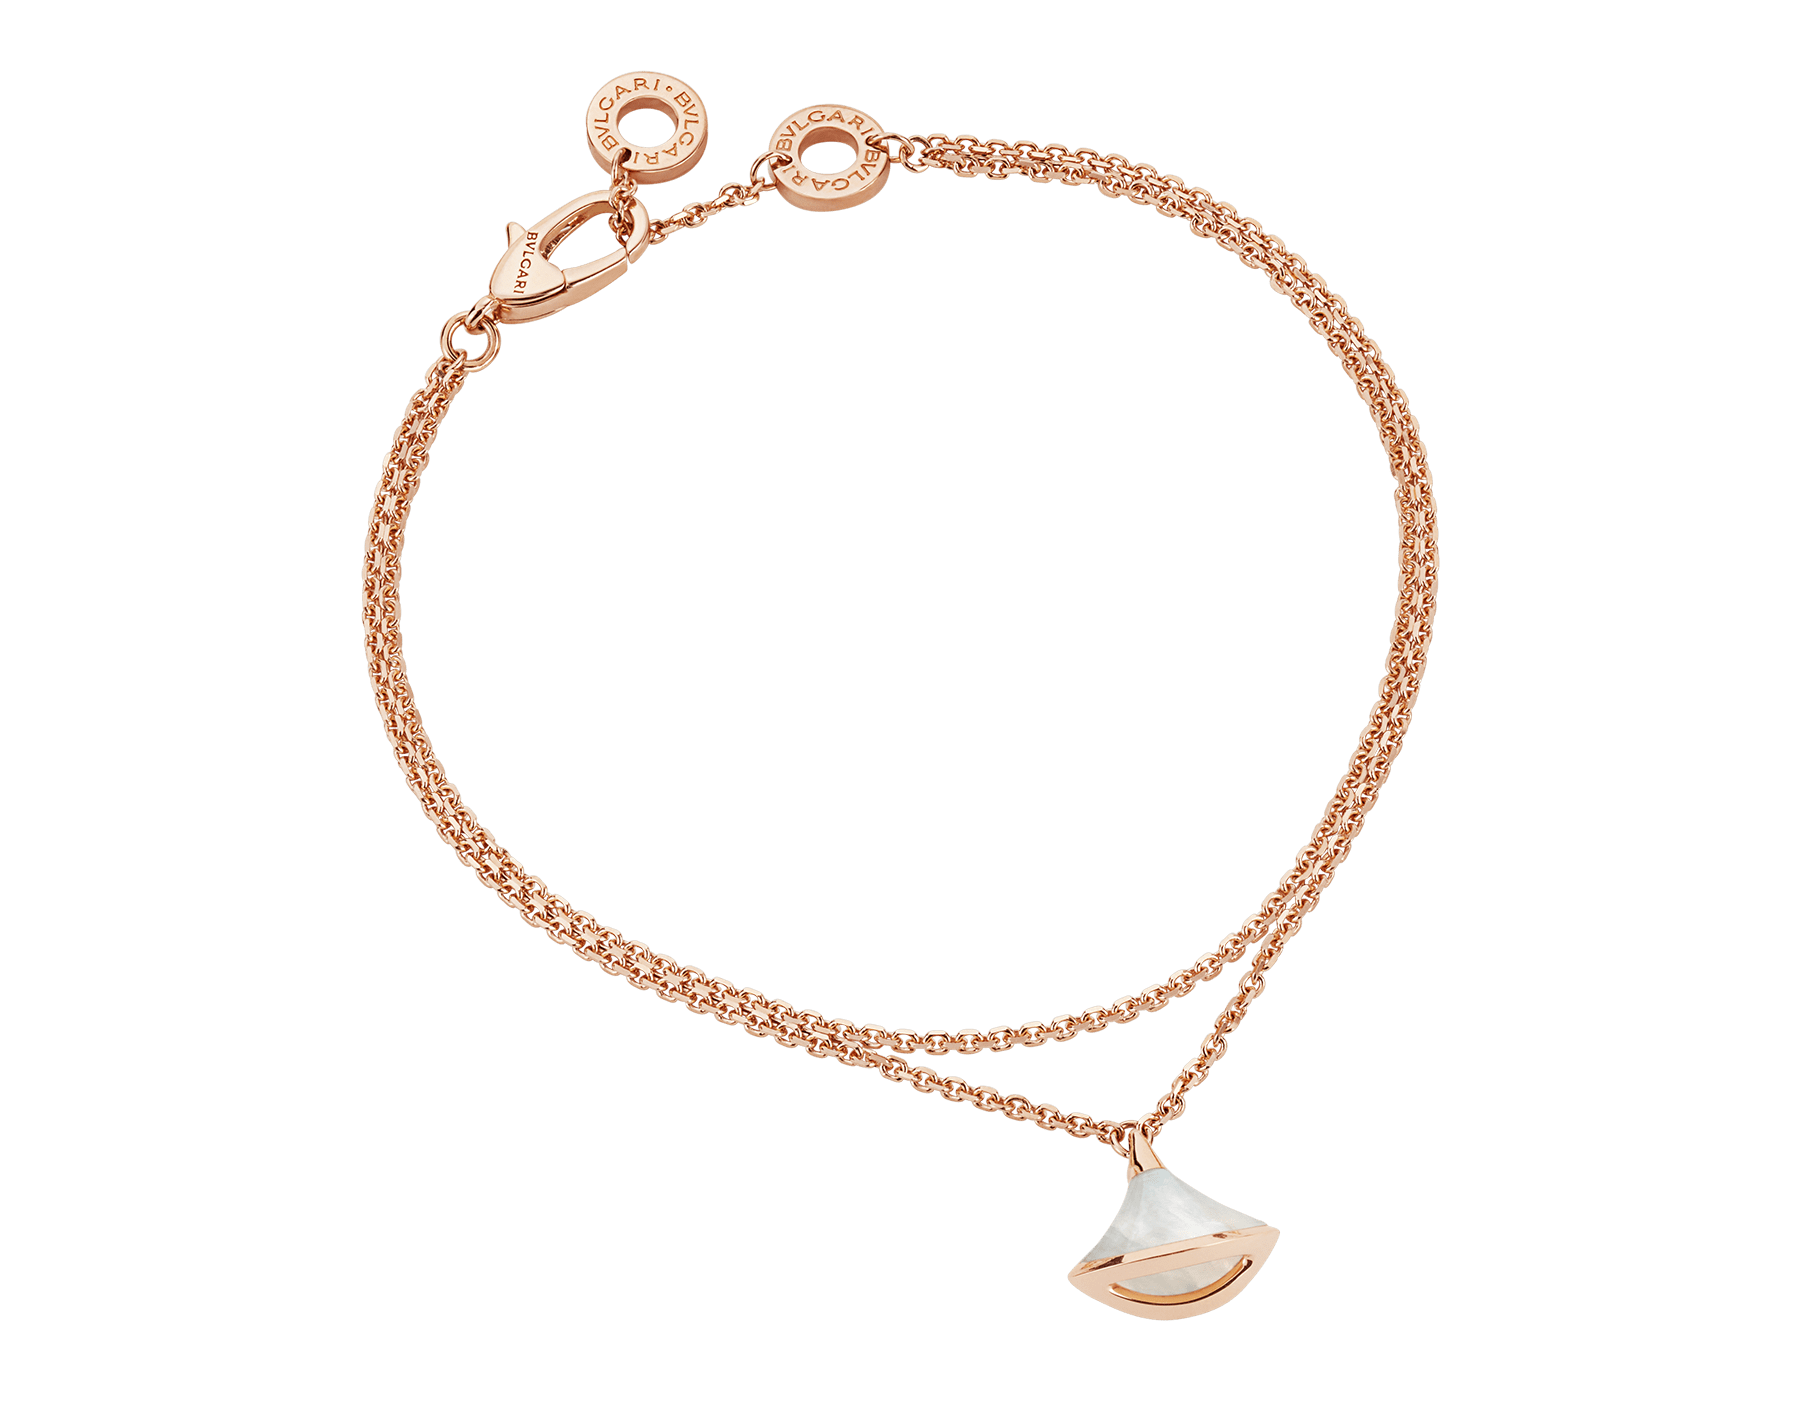 DIVAS' DREAM bracelet in 18 kt rose gold, with 18 kt rose gold pendant set with mother-of-pearl. BR857196 image 1